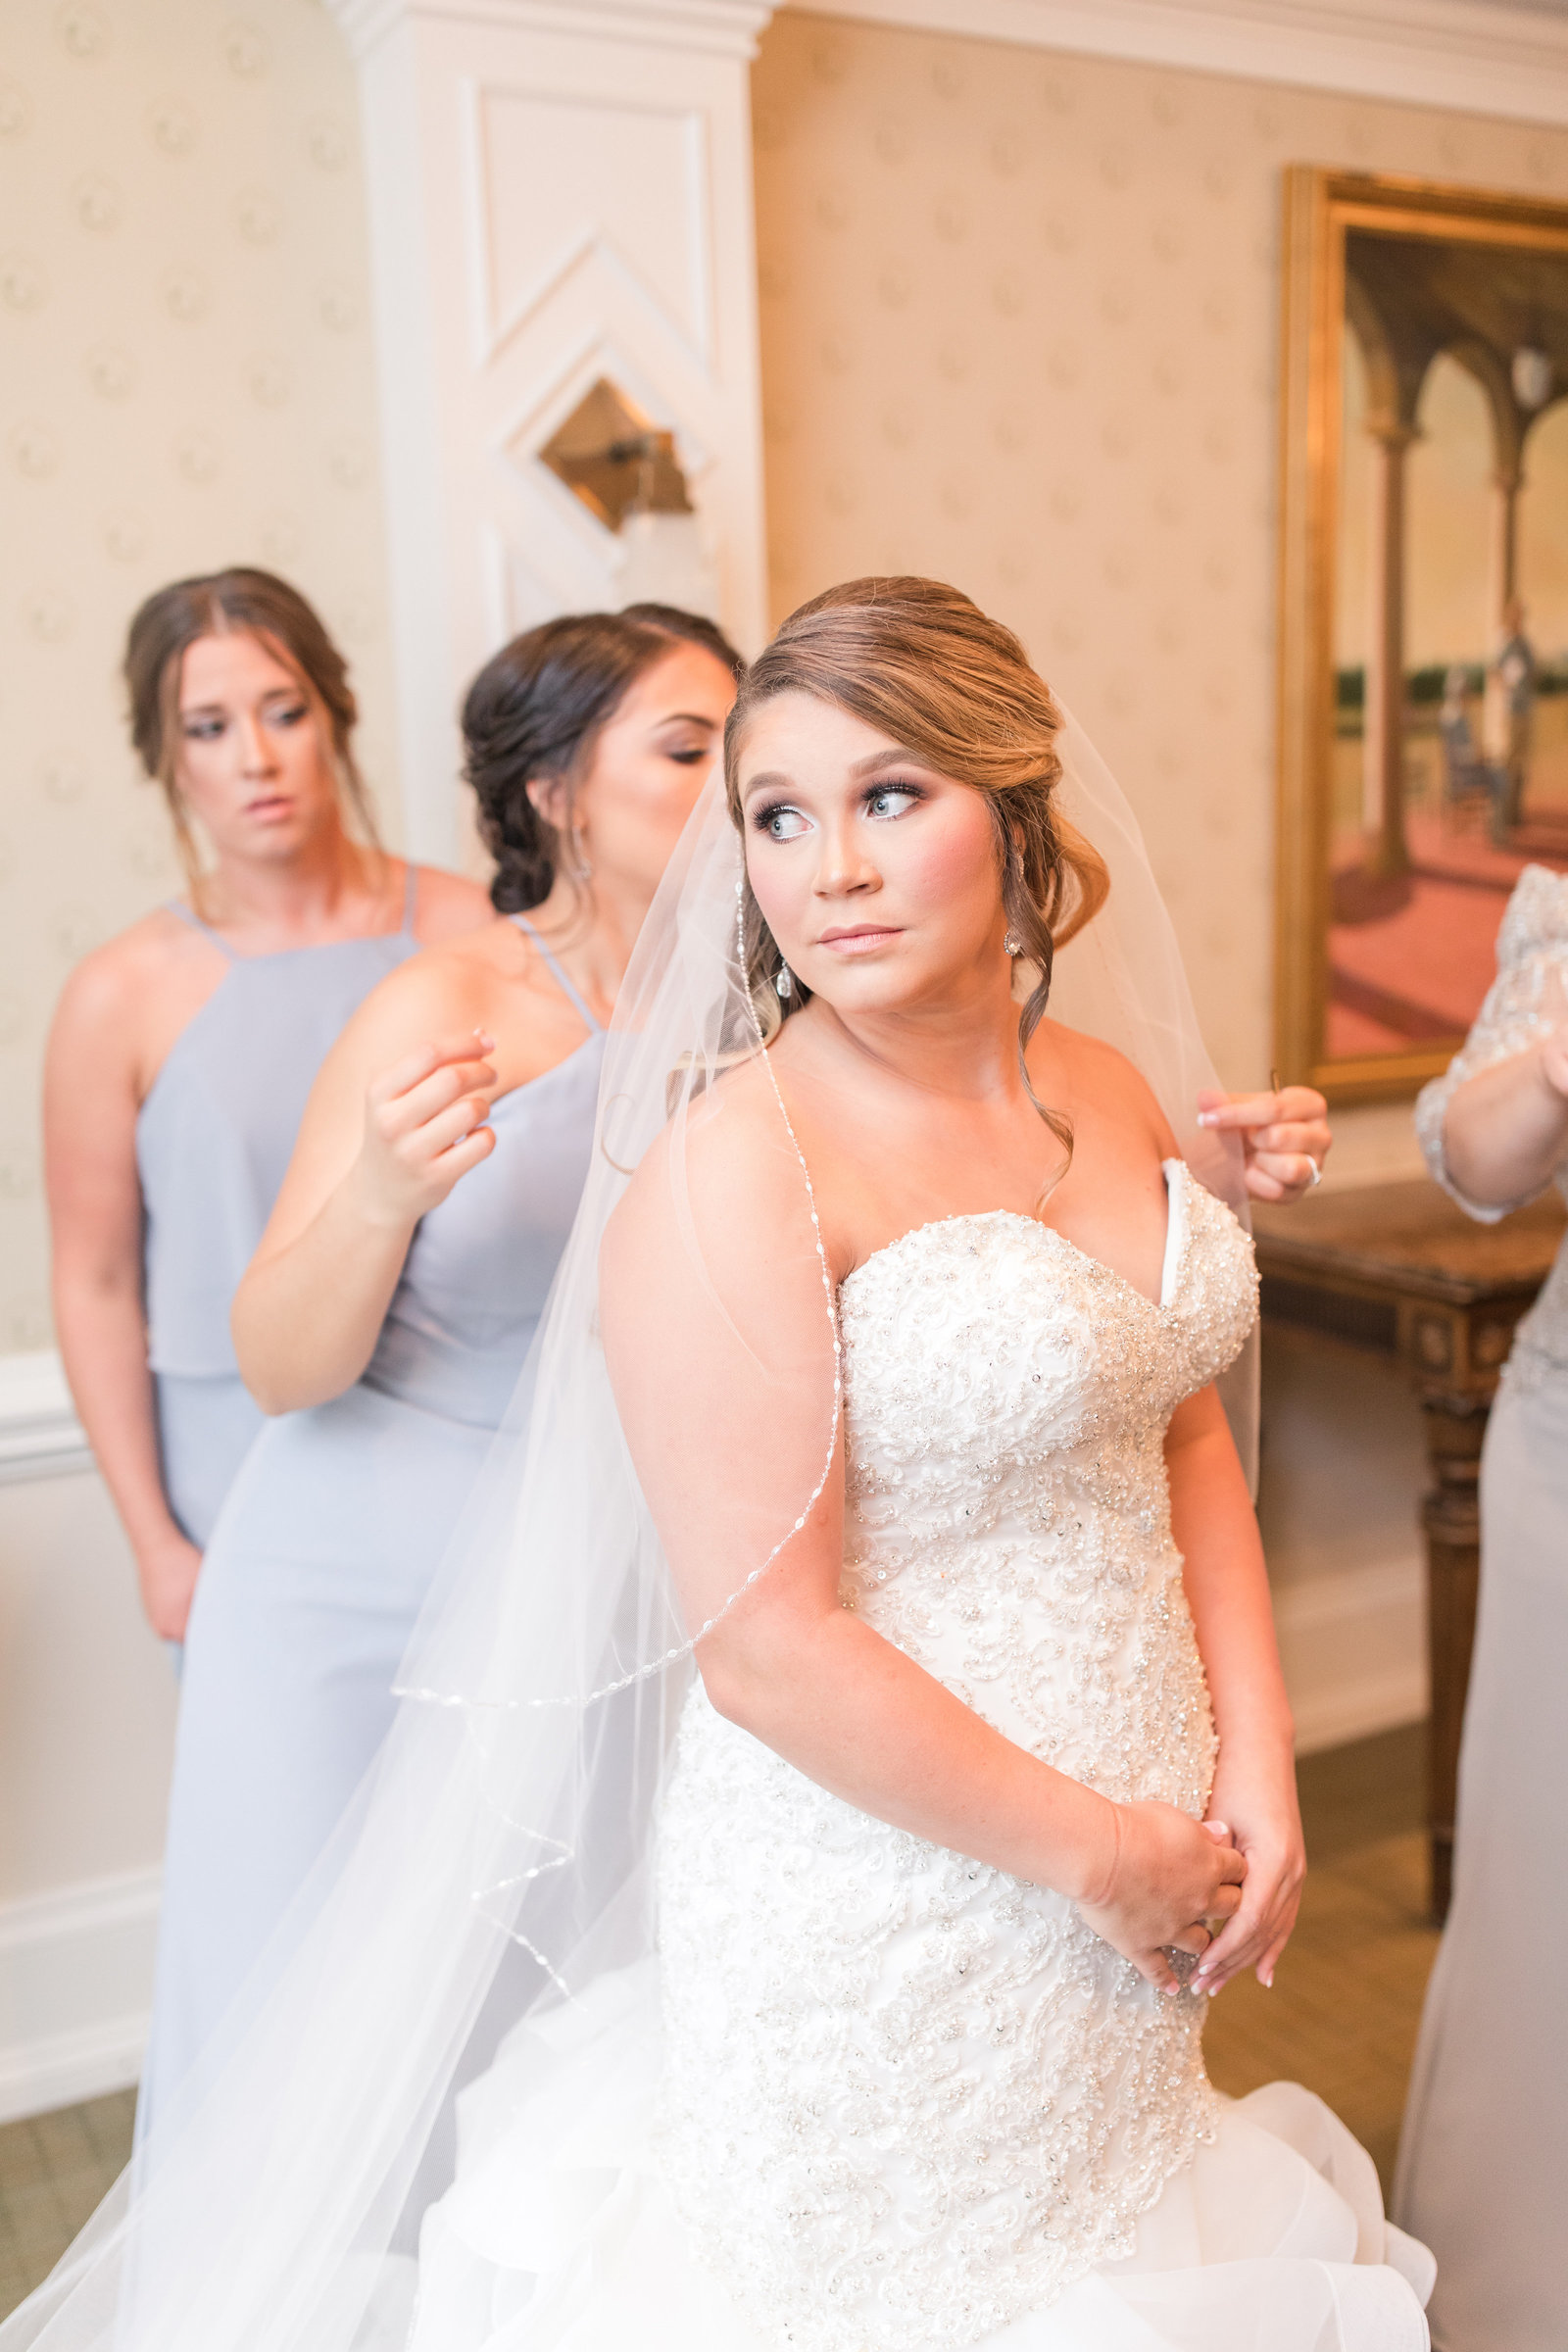 Jennifer_B_Photography-Pinehurst_Club-Pinehurst_NC-Wedding_Day-Caleb___Miranda-JB_Favs-2019-0068